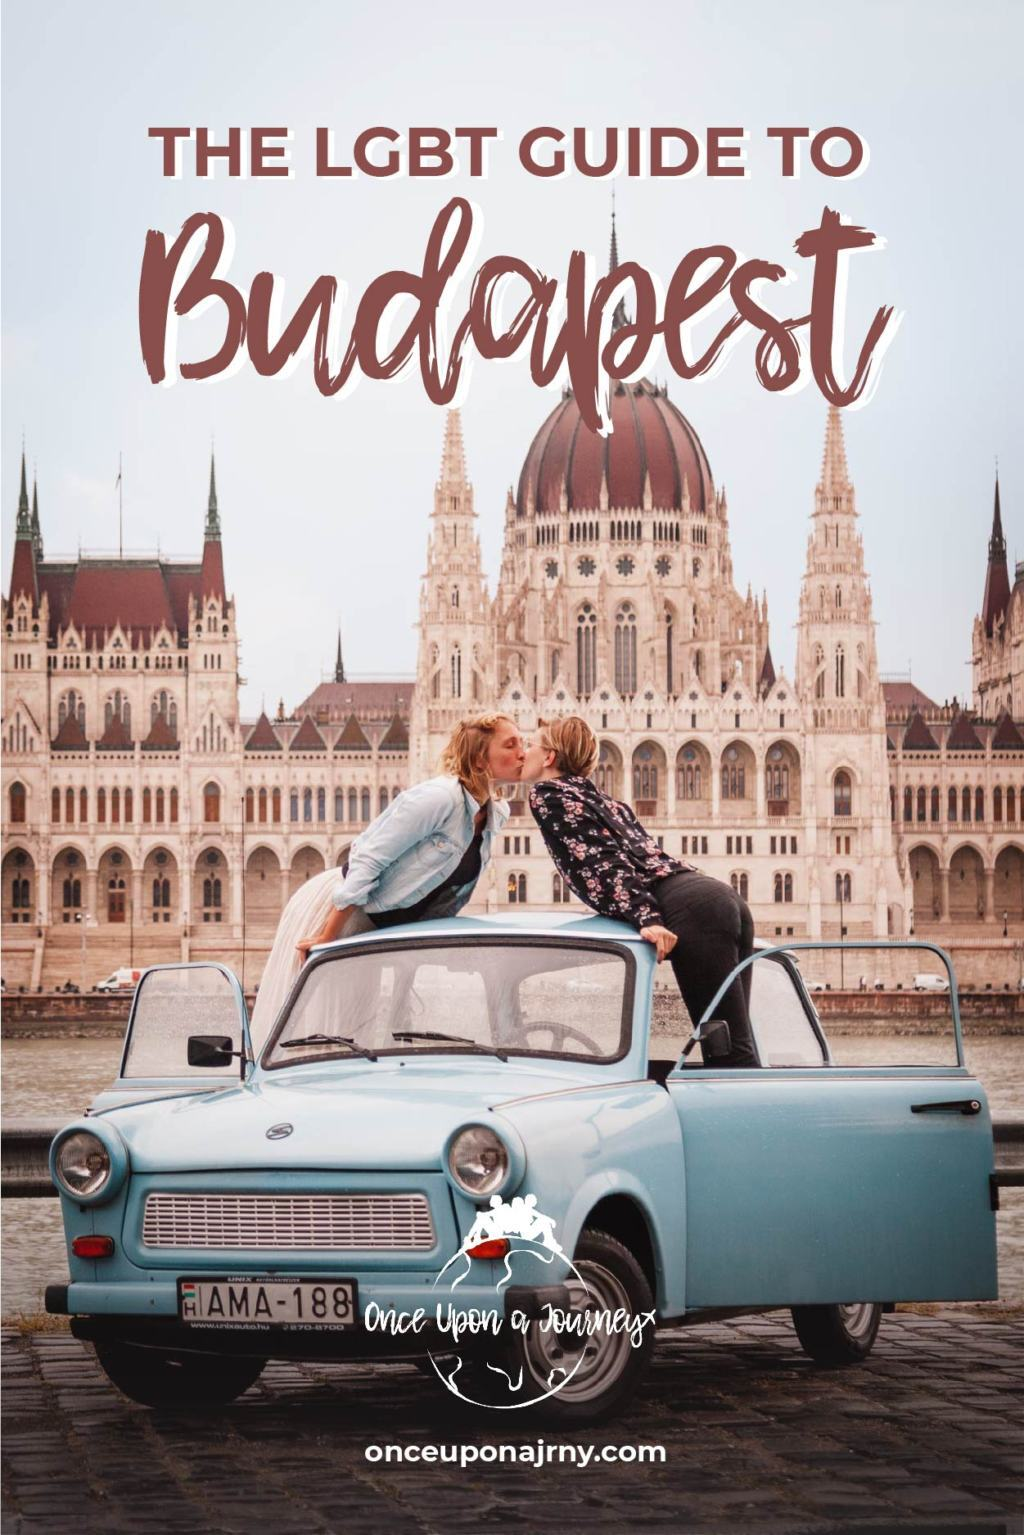 The LGBT Guide to Budapest